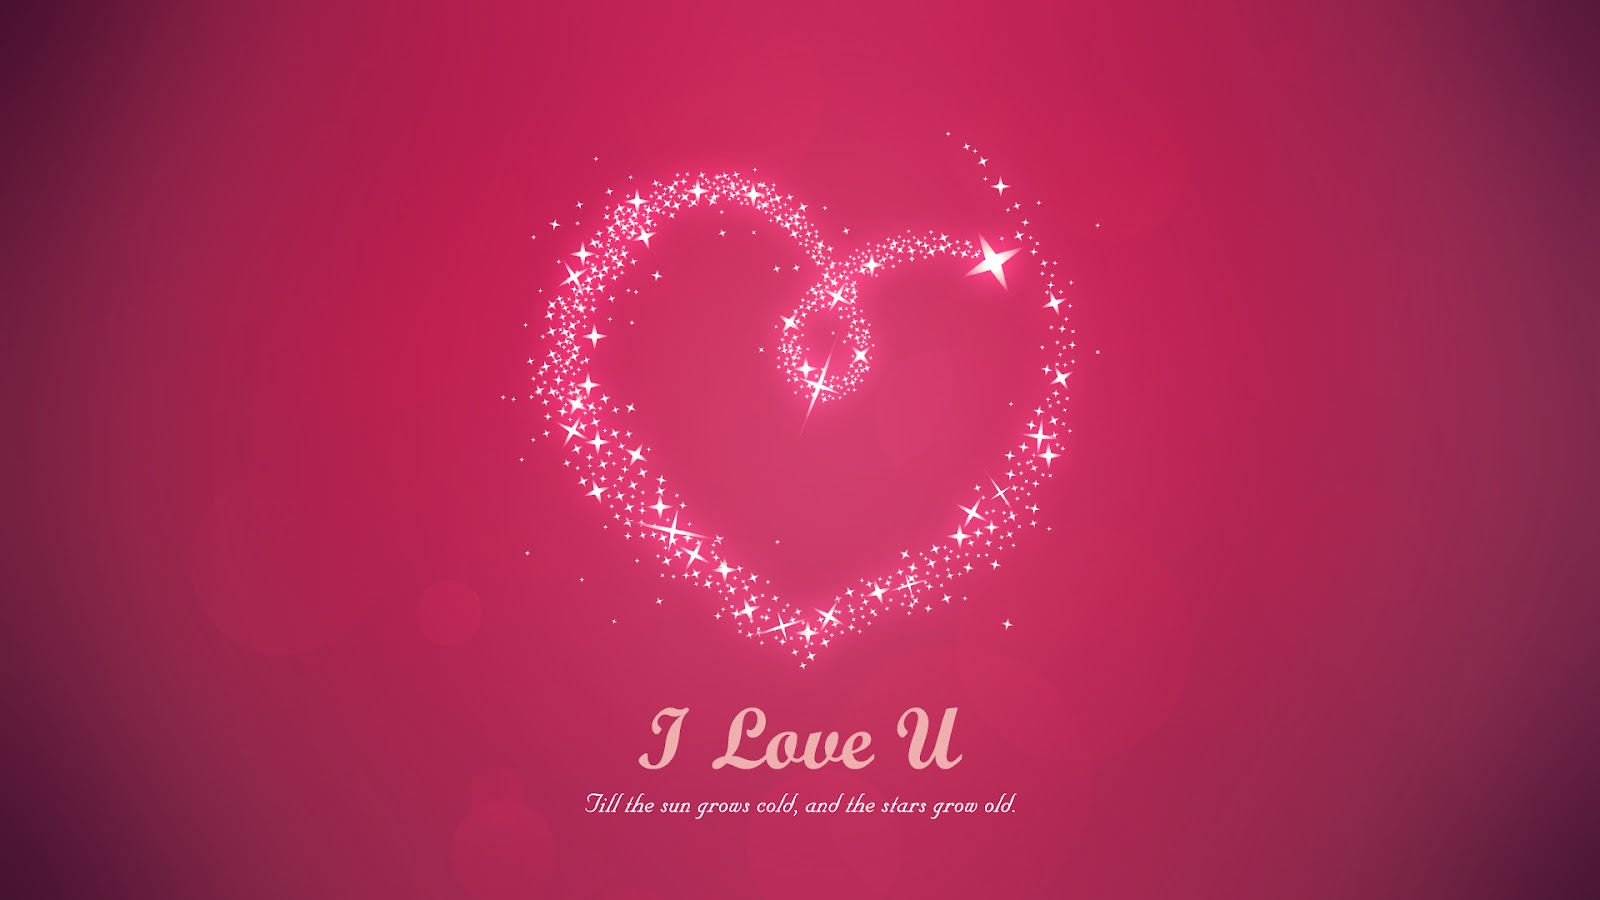 Love Wallpaper Pic : i love u wallpapers love wallpapers love quotes wallpapers sad love wallpapers sad ...